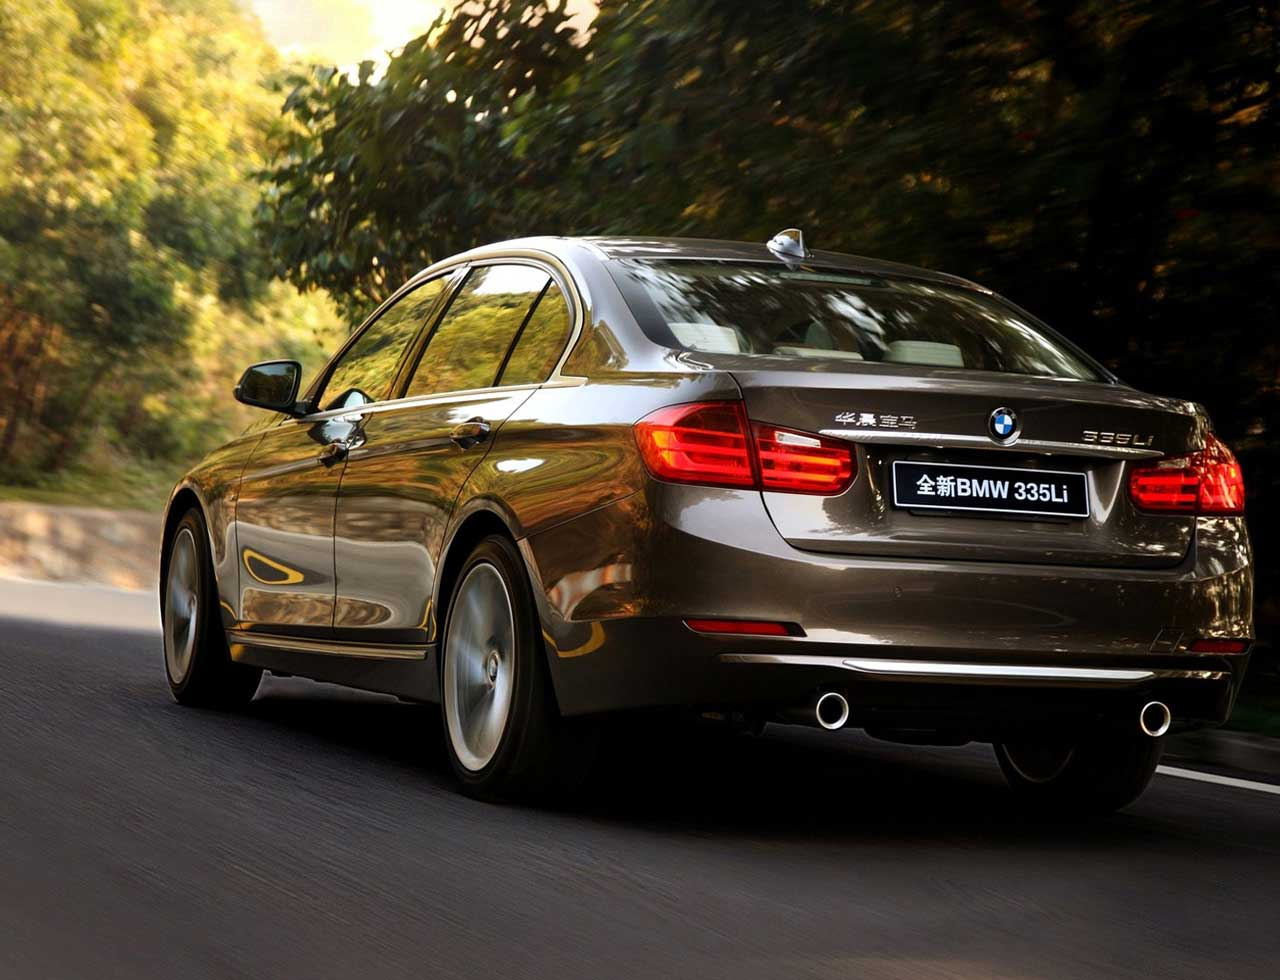 BMW 3 series 335i 2013 photo - 11